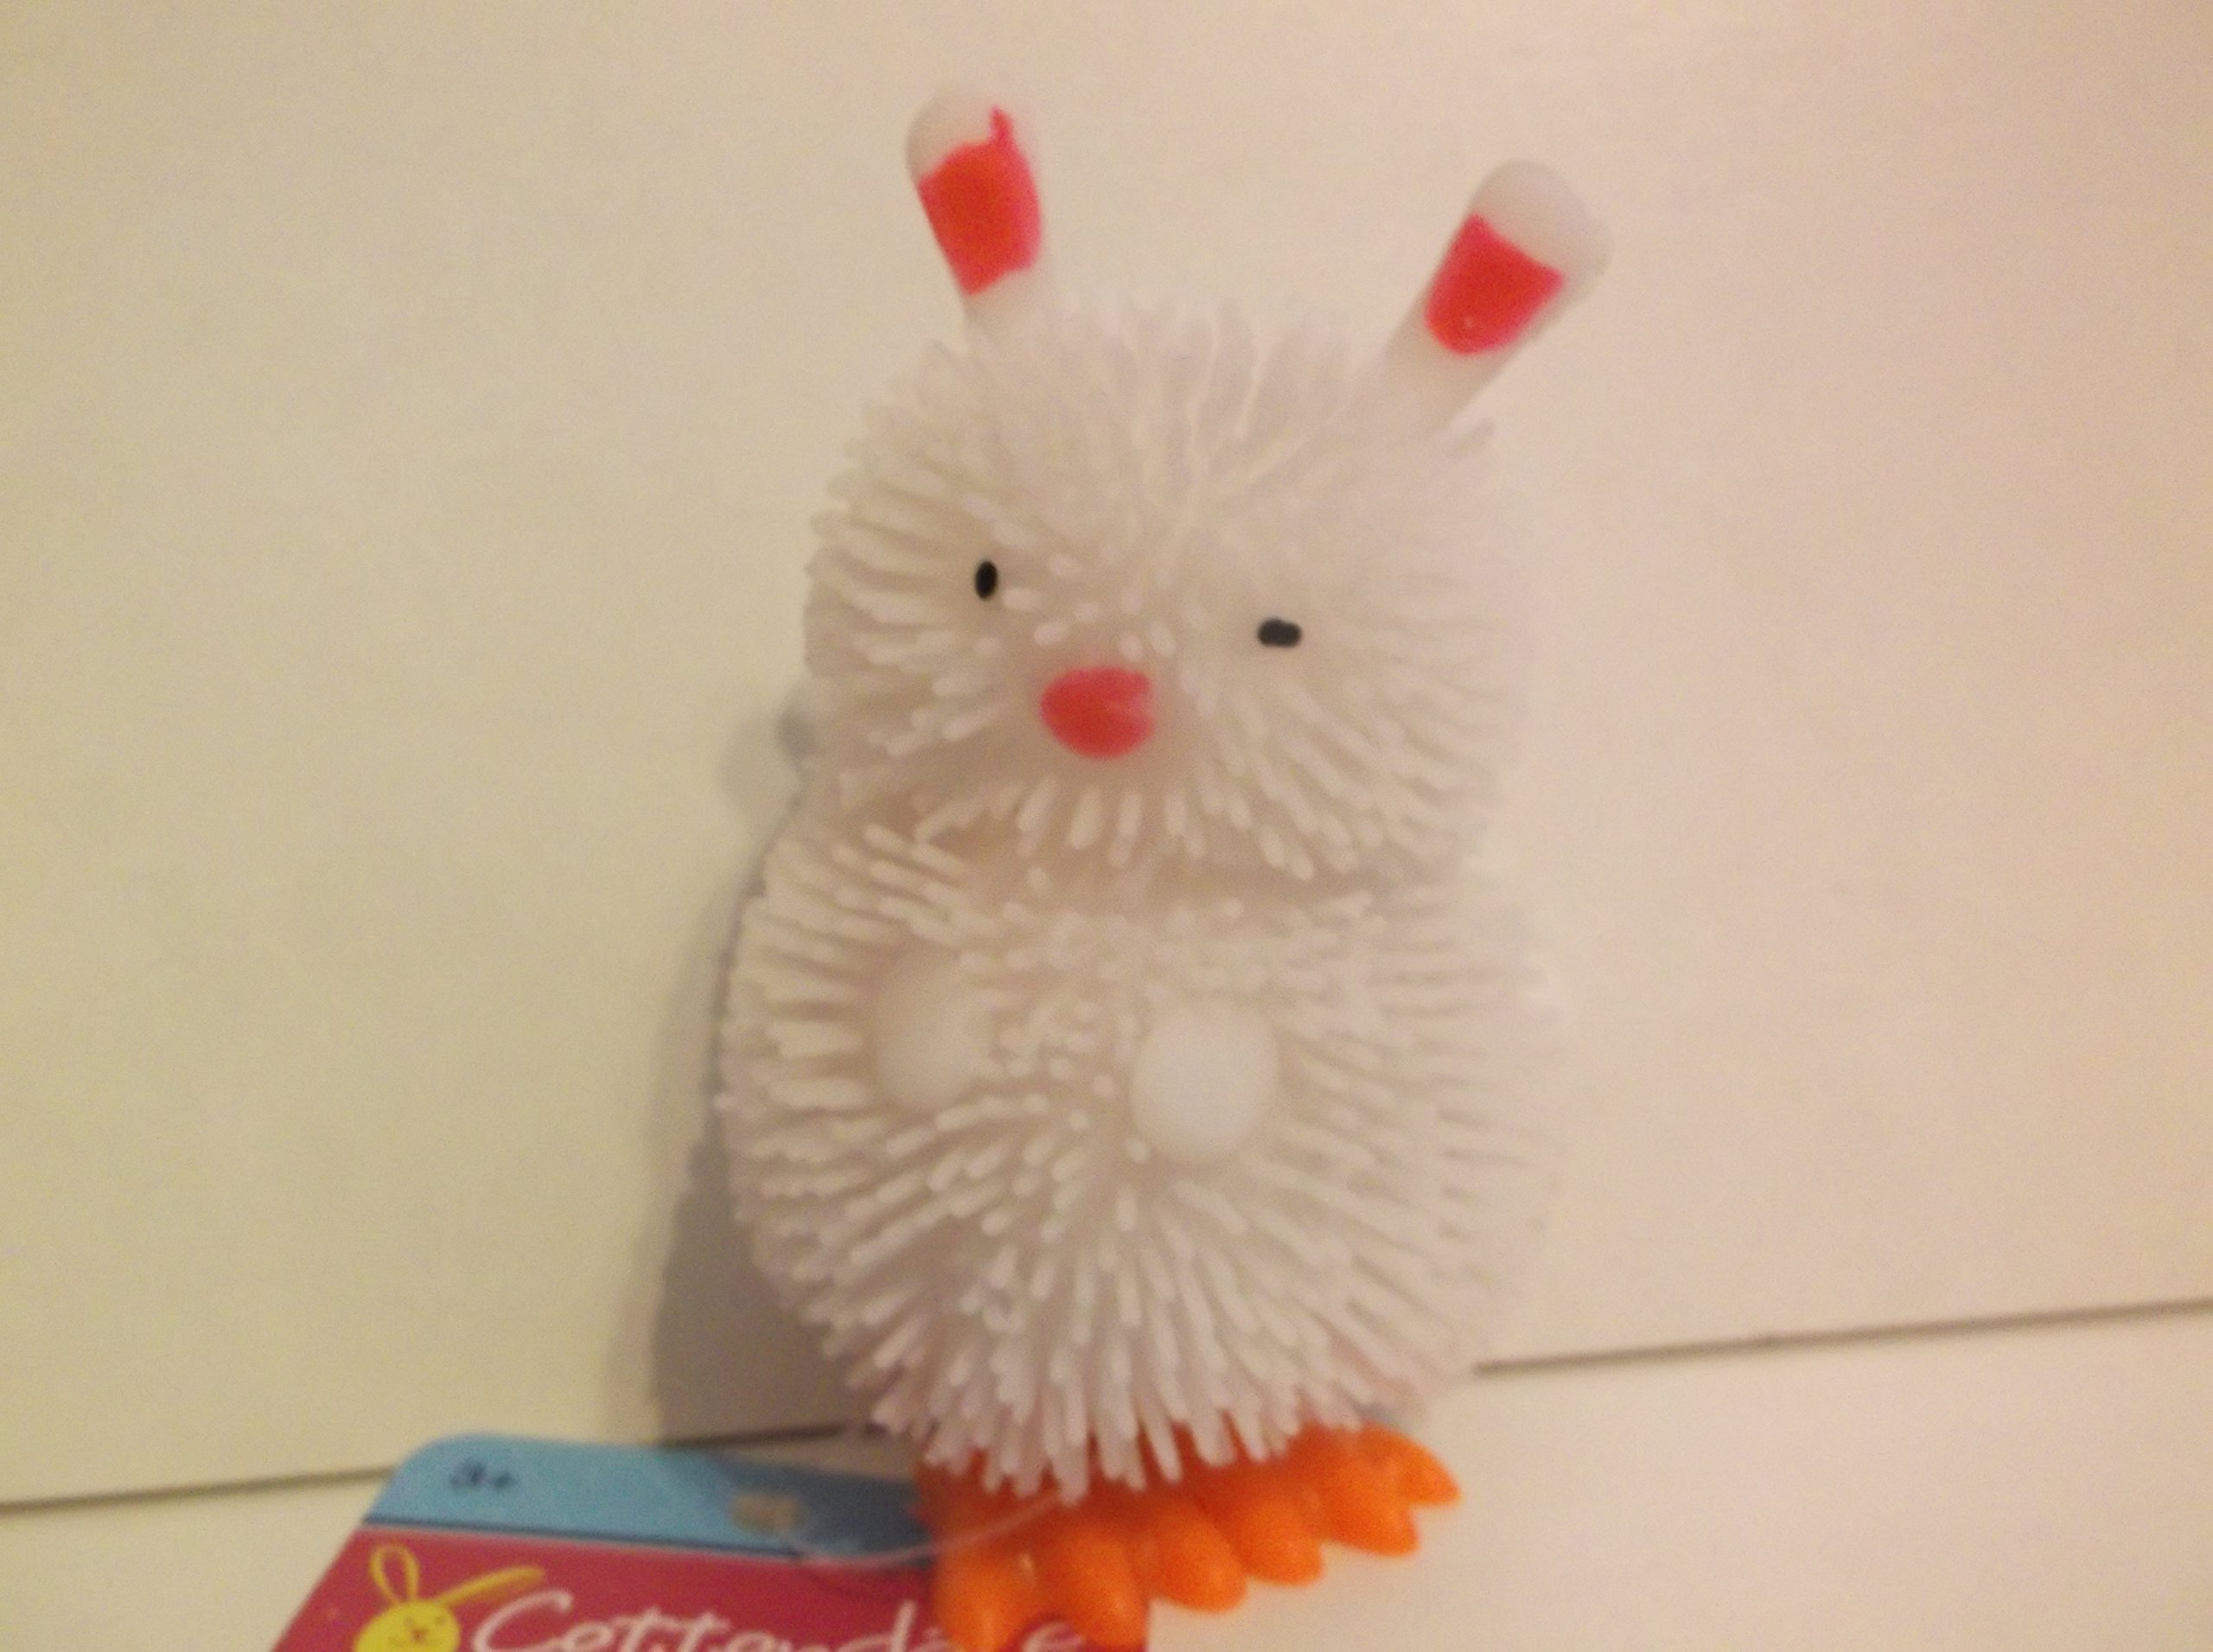 CVS Pharmacy CottondaleWind-Up Animal